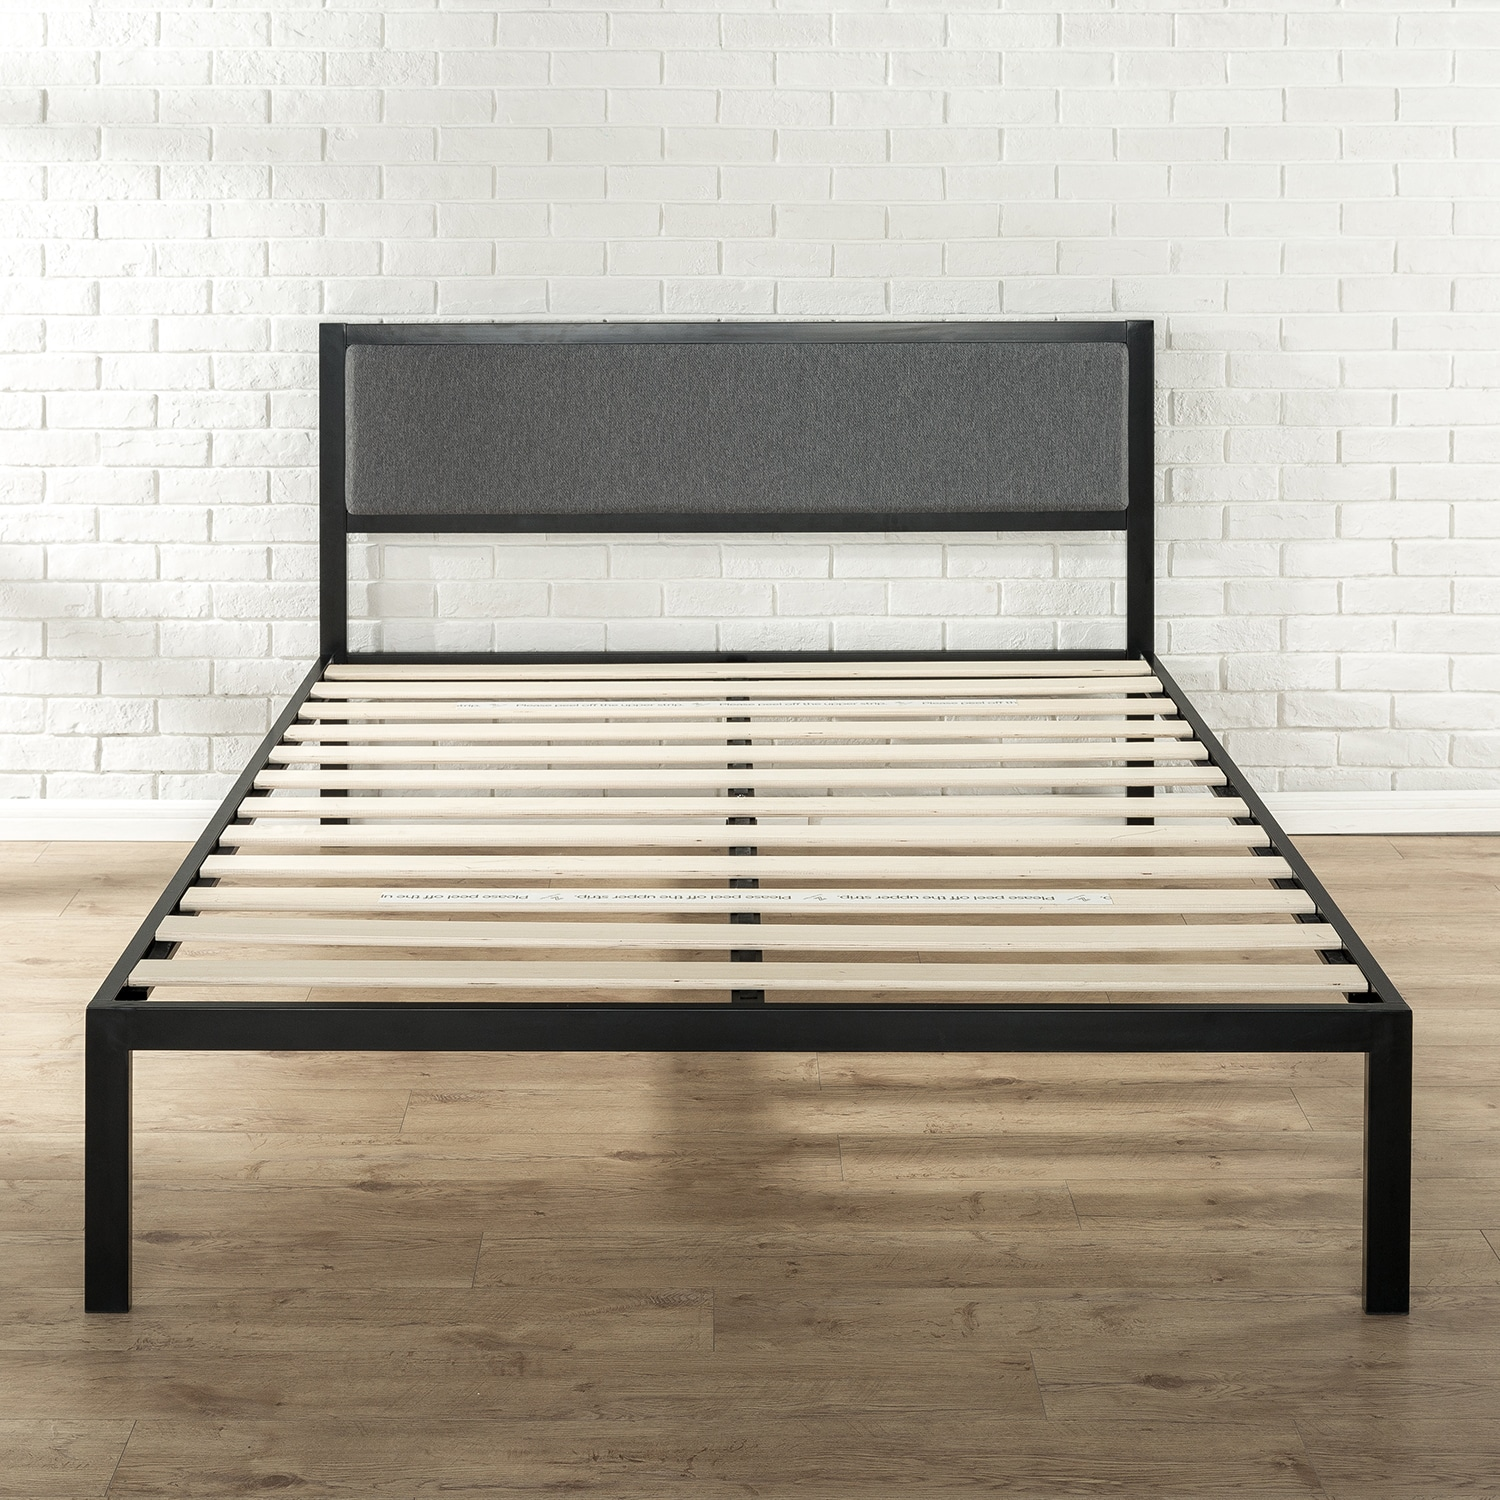 Shop Priage Black Steel Platform Bed Frame with Grey Upholstered ...